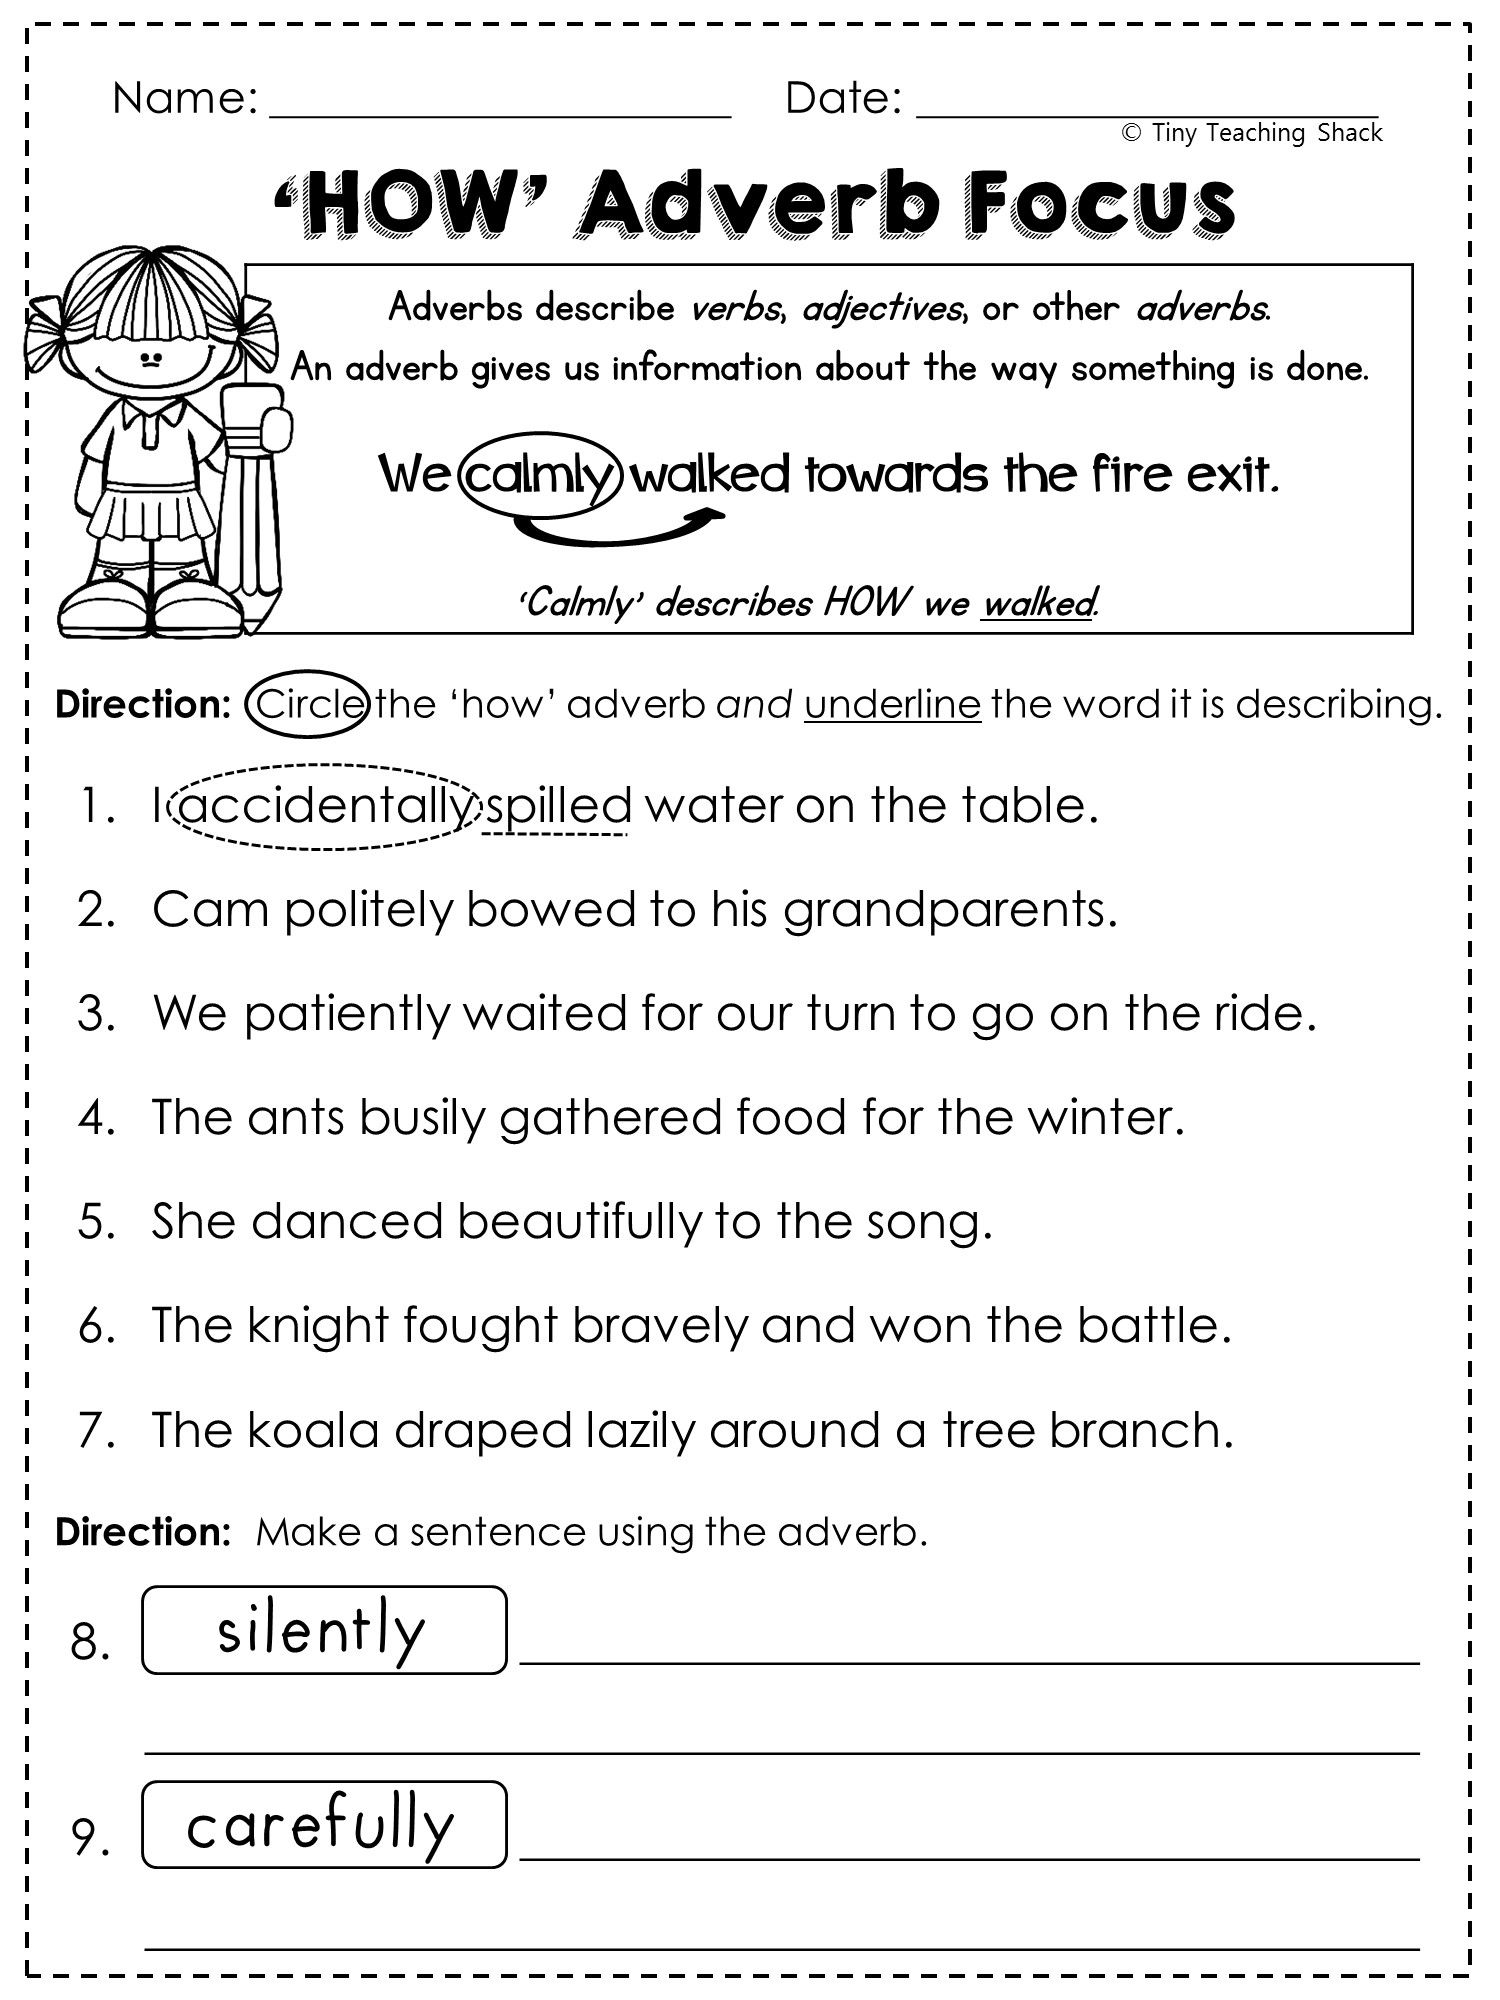 Free Adverb Worksheet